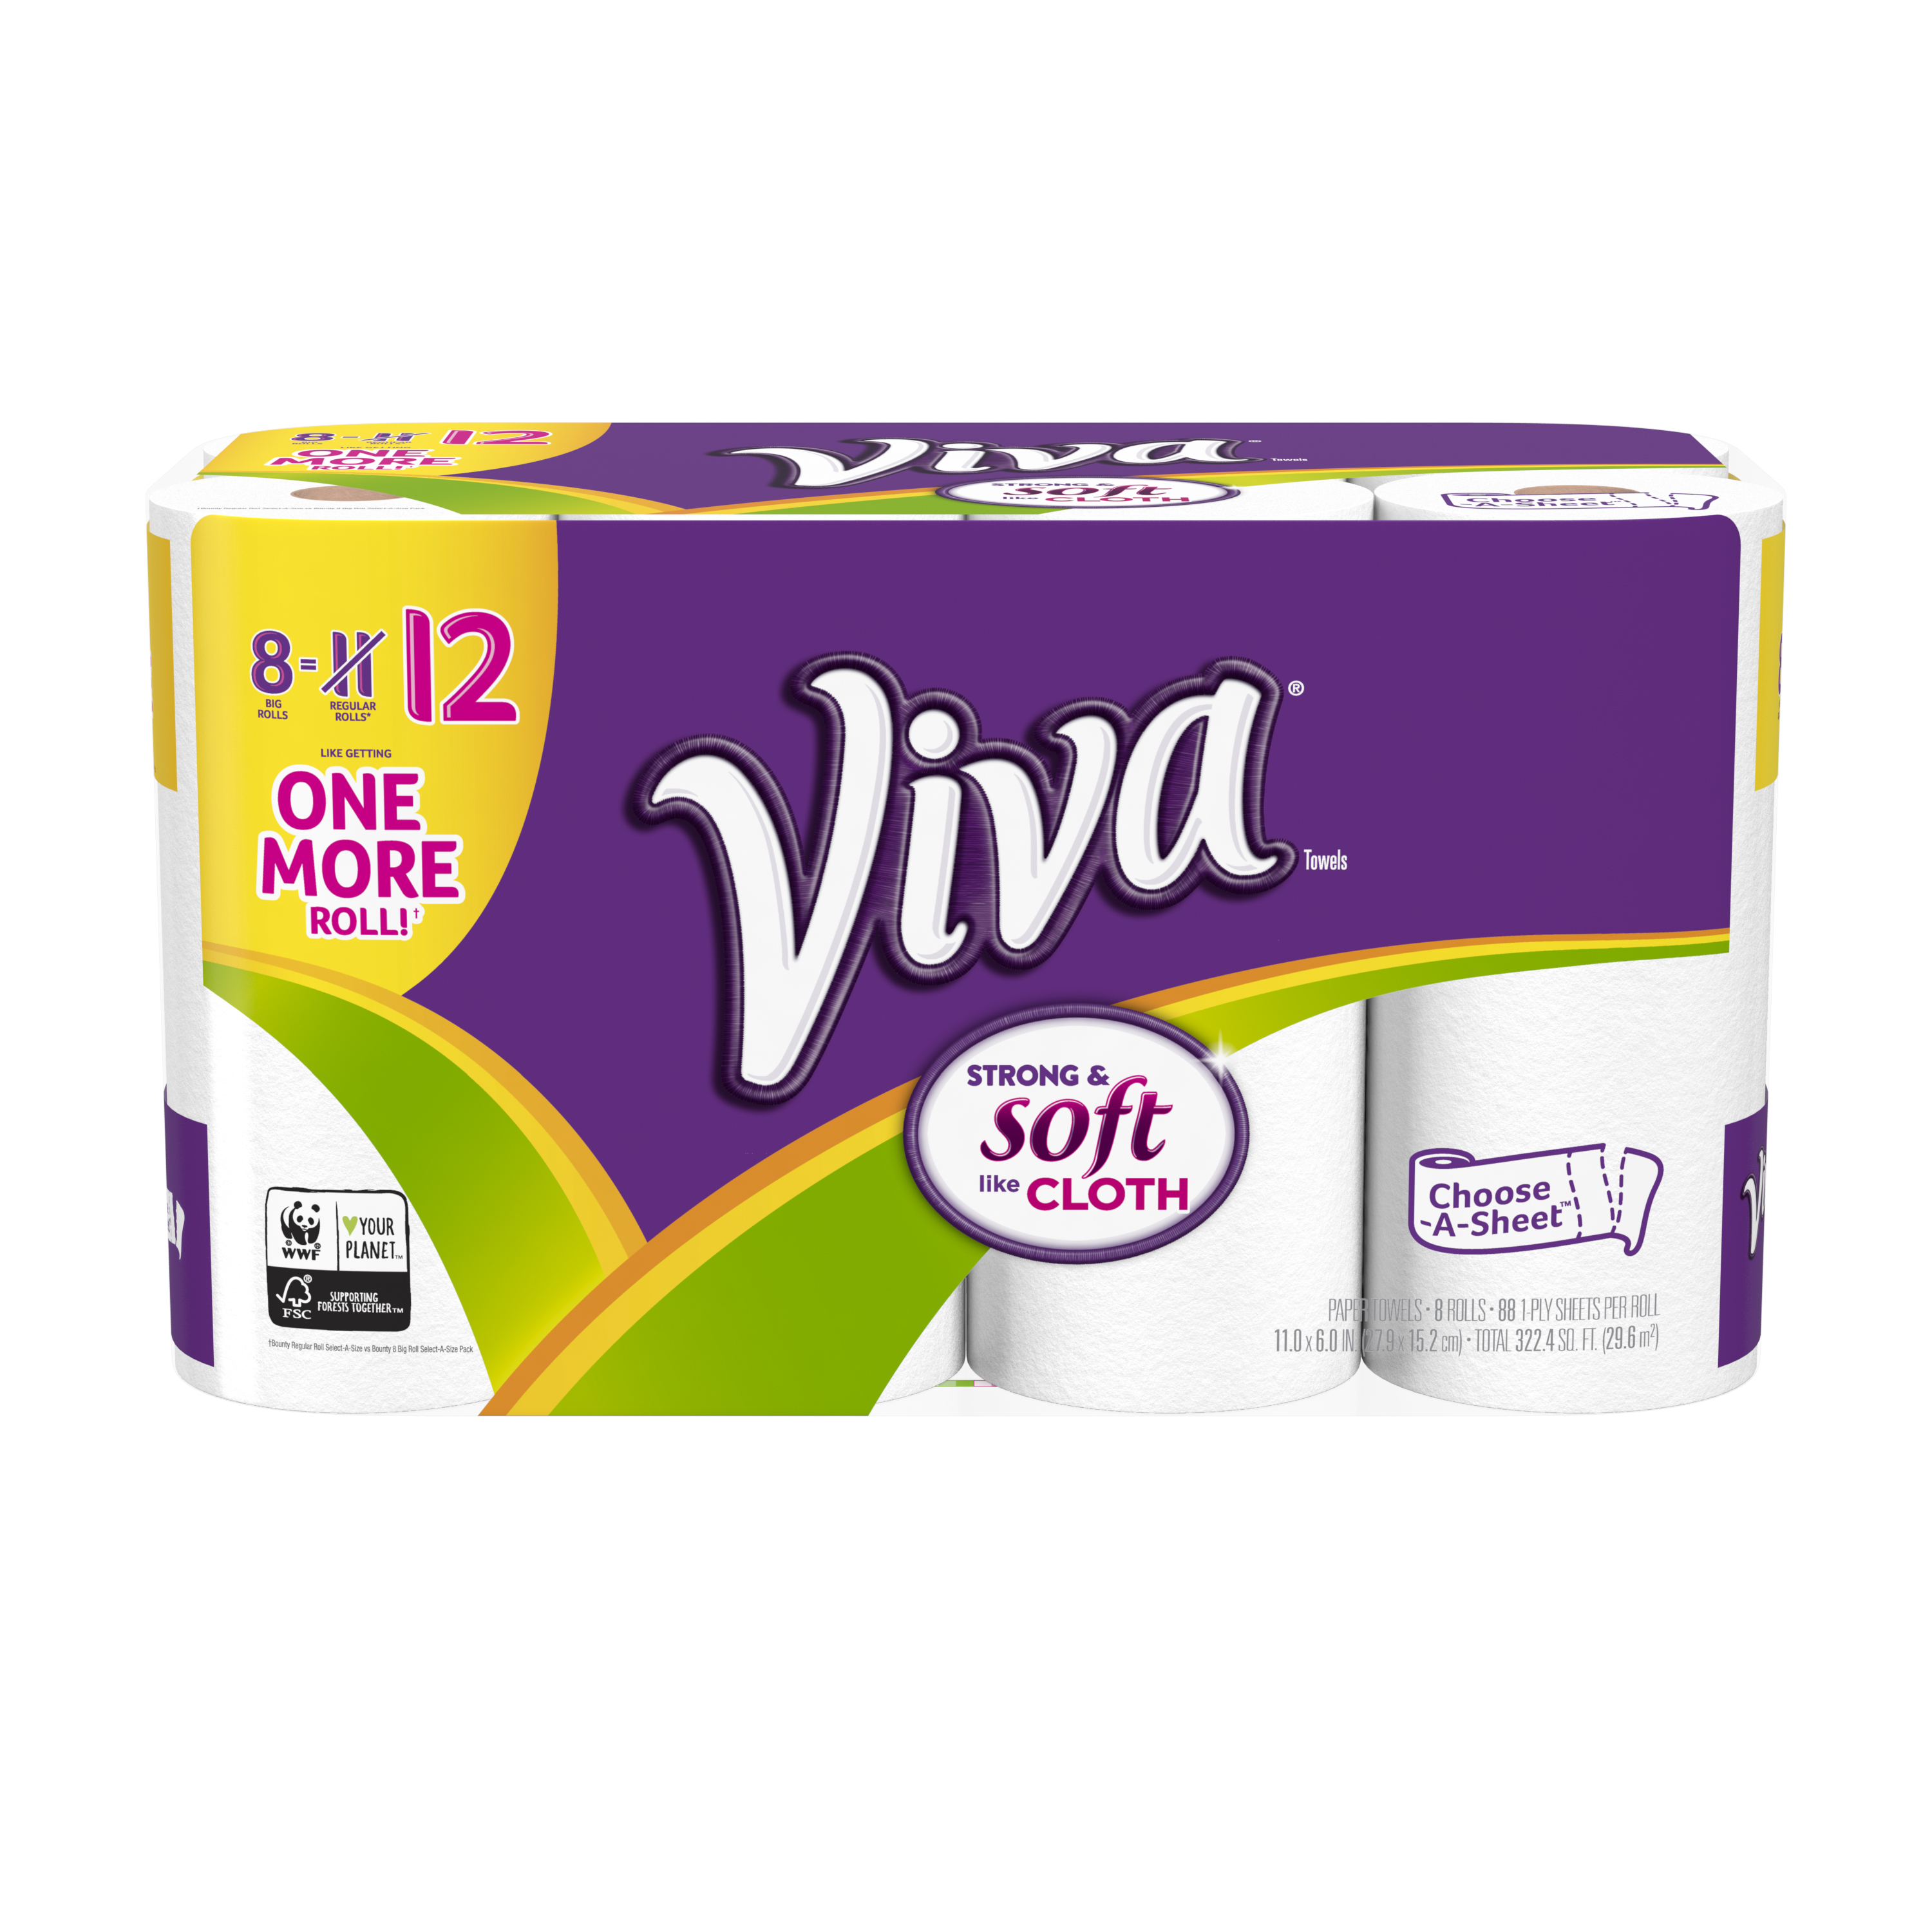 Viva Paper Towels, Choose-A-Sheet, 8 Big Rolls